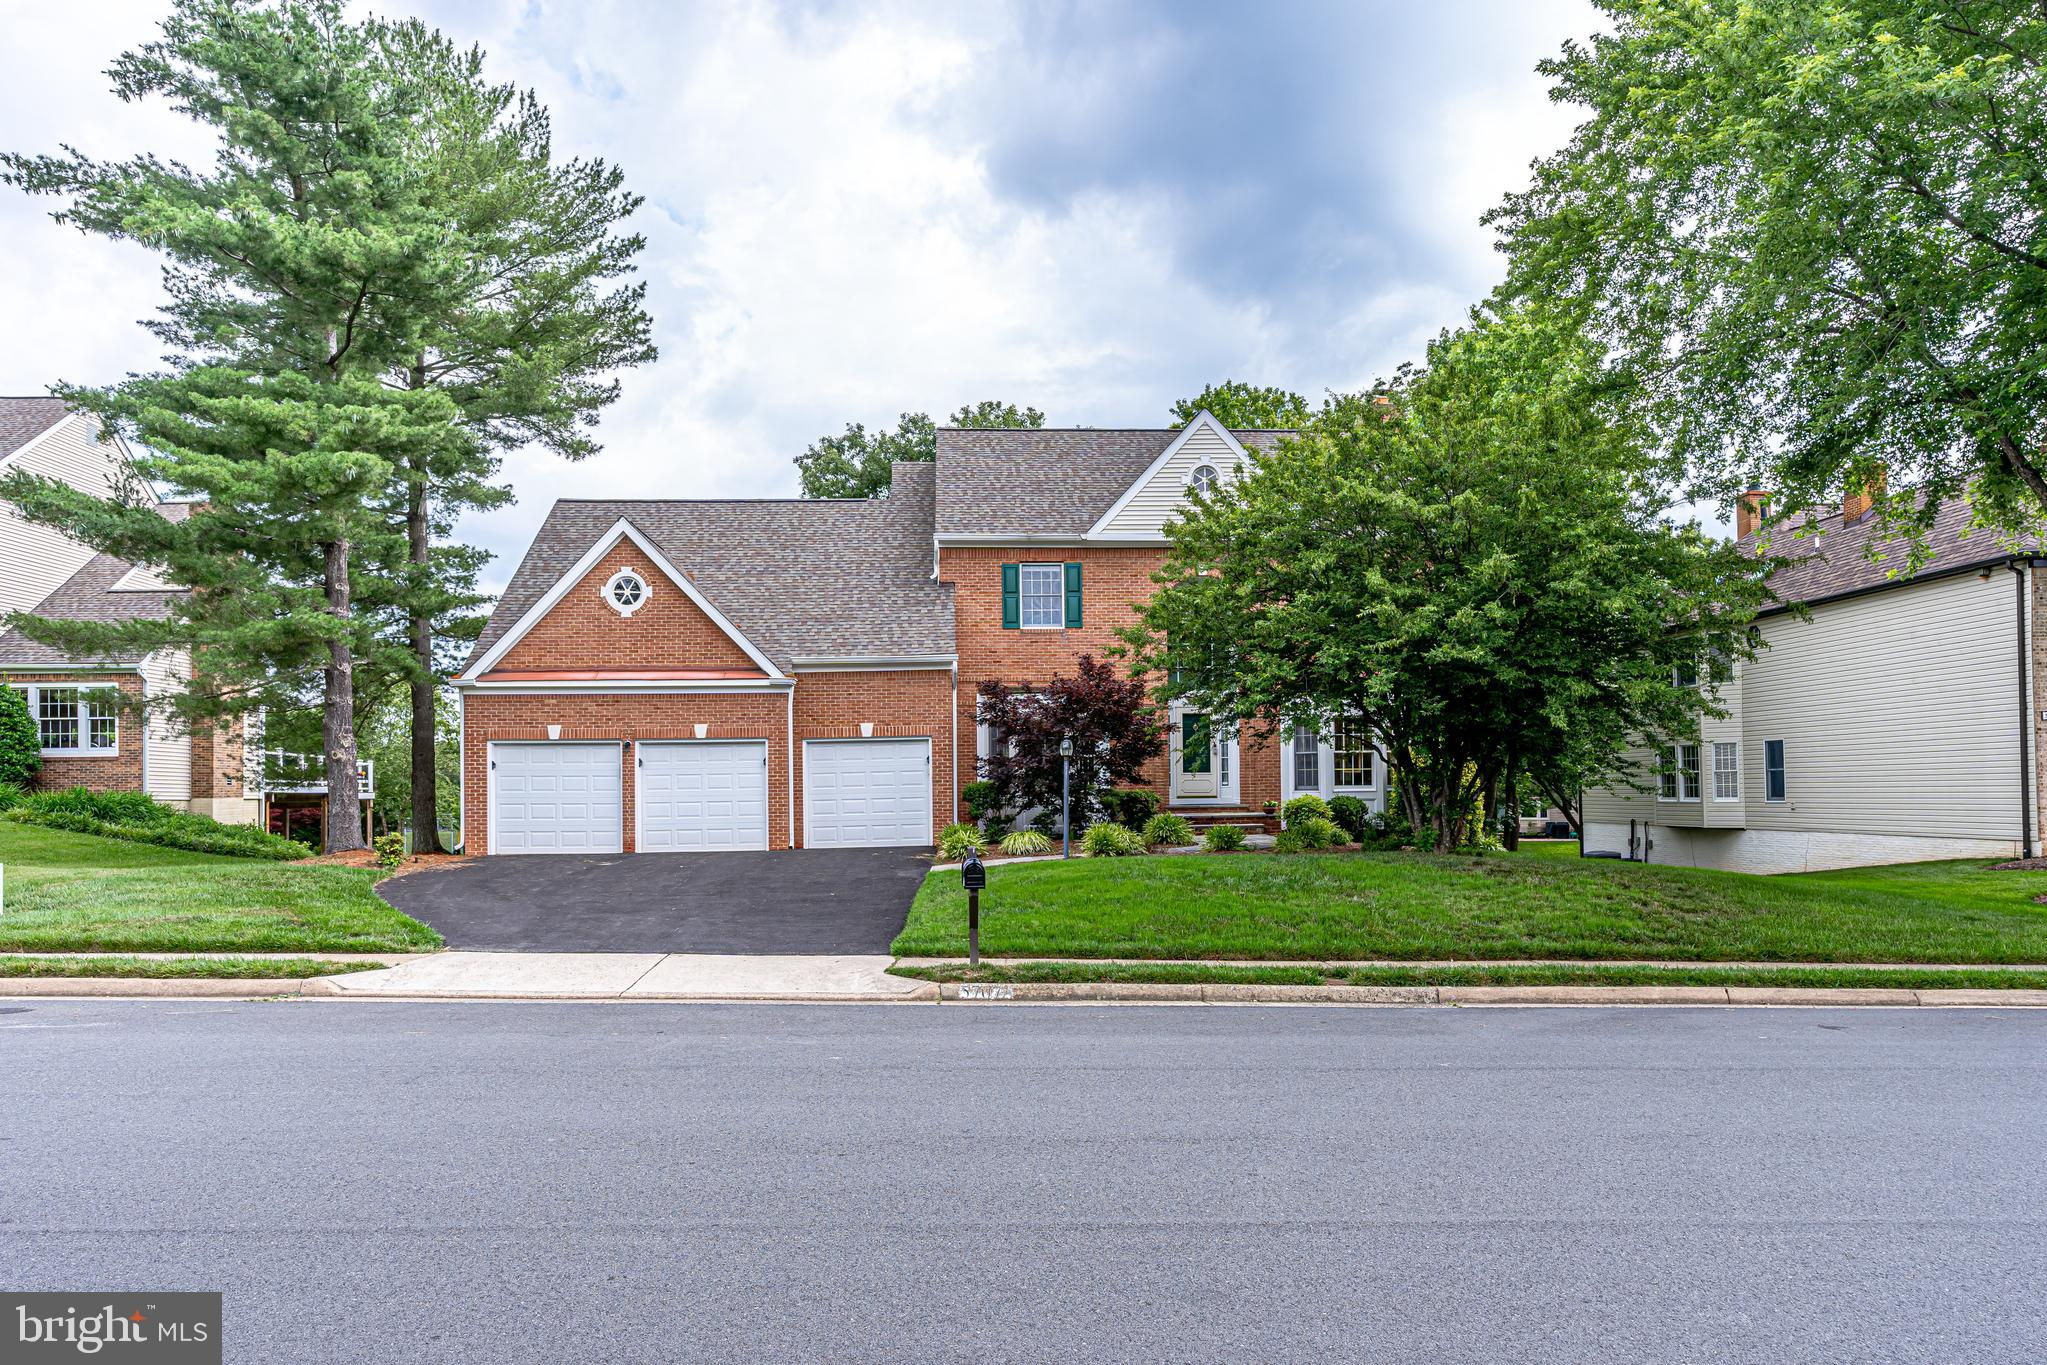 Gorgeous 4BR/3.5BA colonial in desirable Hampton Forest w/ 3-car garage, fully automated home genera